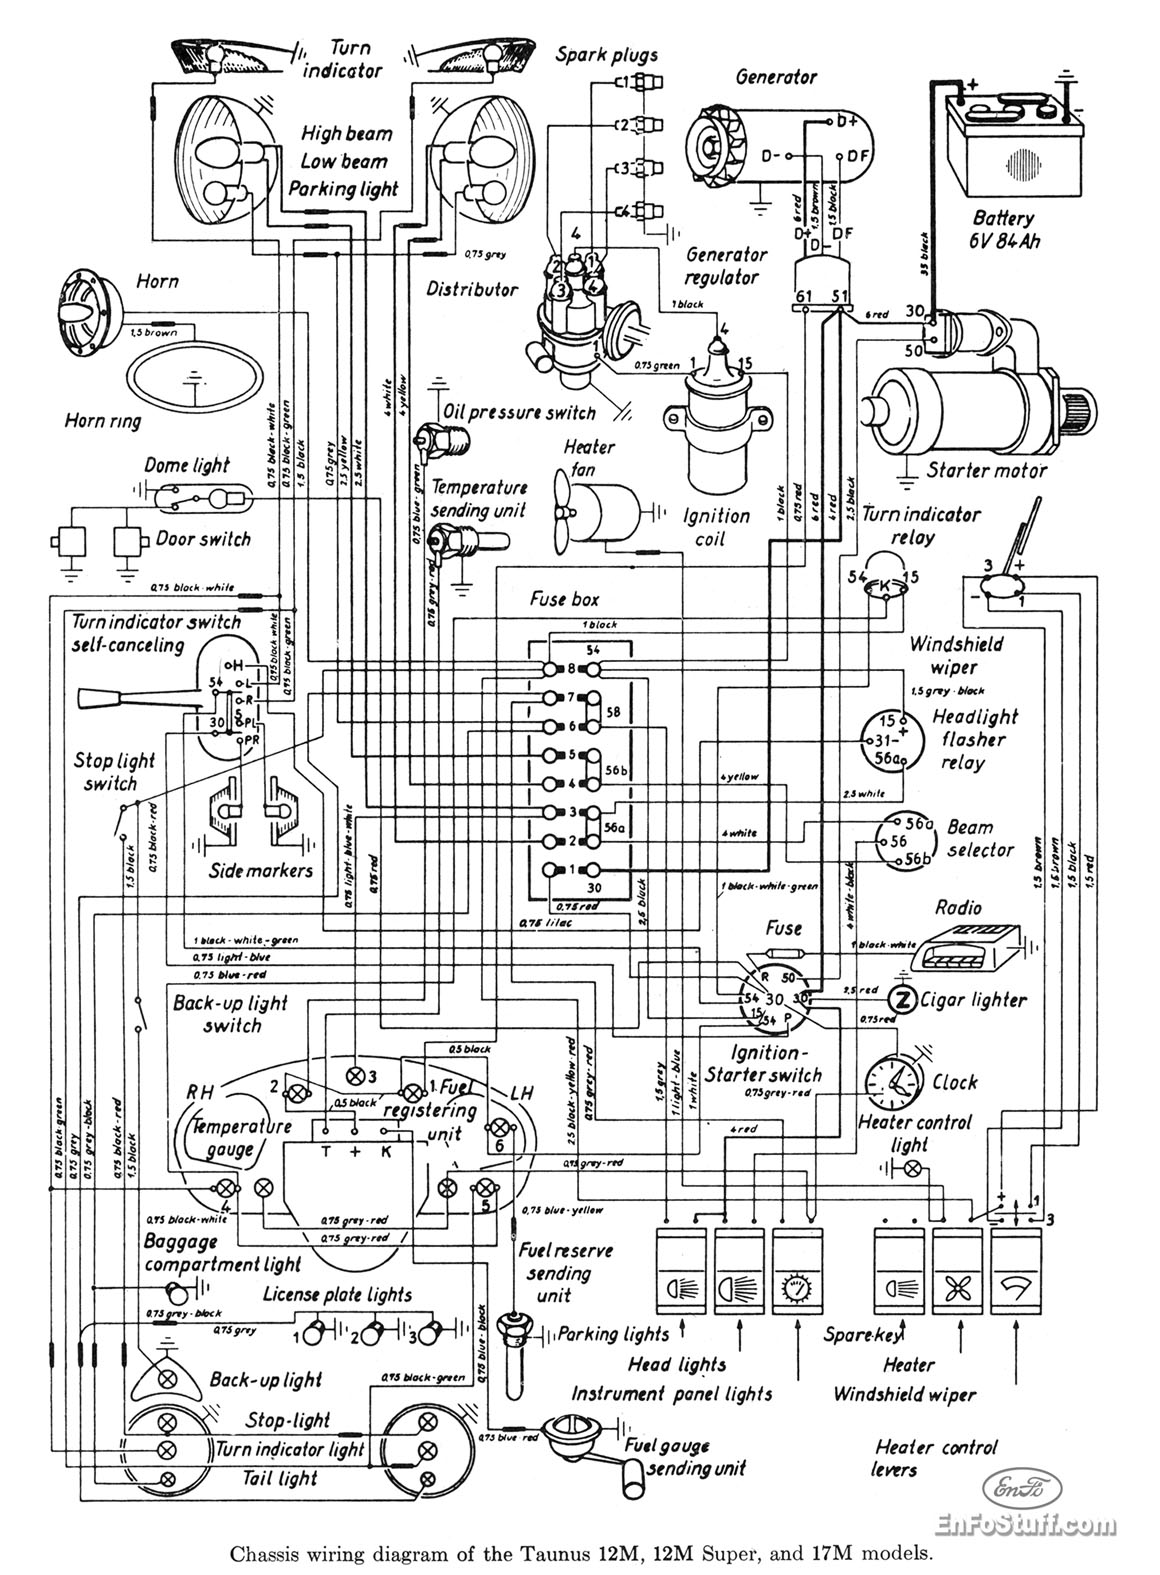 ford taunus 12m 17m wiring diagram citroen c4 wiring diagram citroen c4 stereo wiring diagram citroen c4 wiring diagram pdf at fashall.co